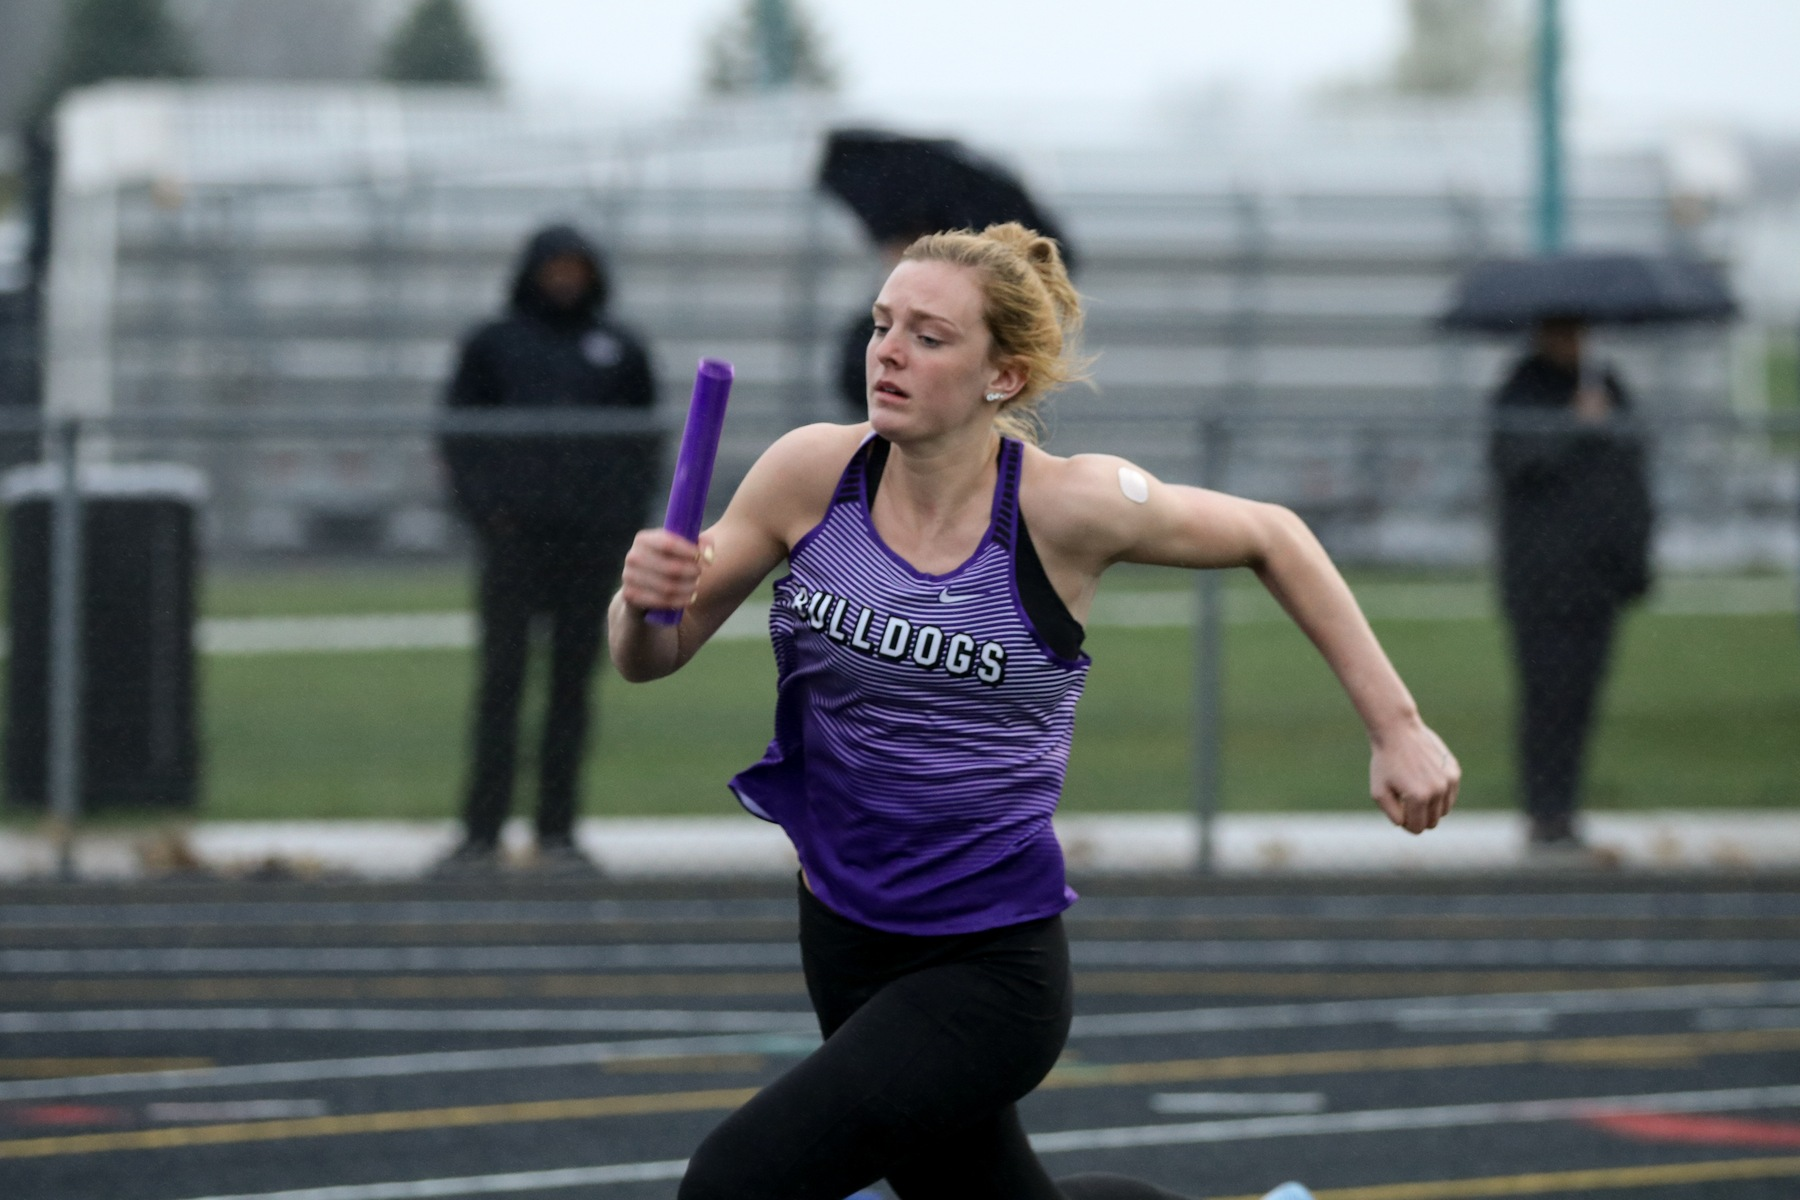 Girls Track & Field Takes 2nd at Zionsville Invite